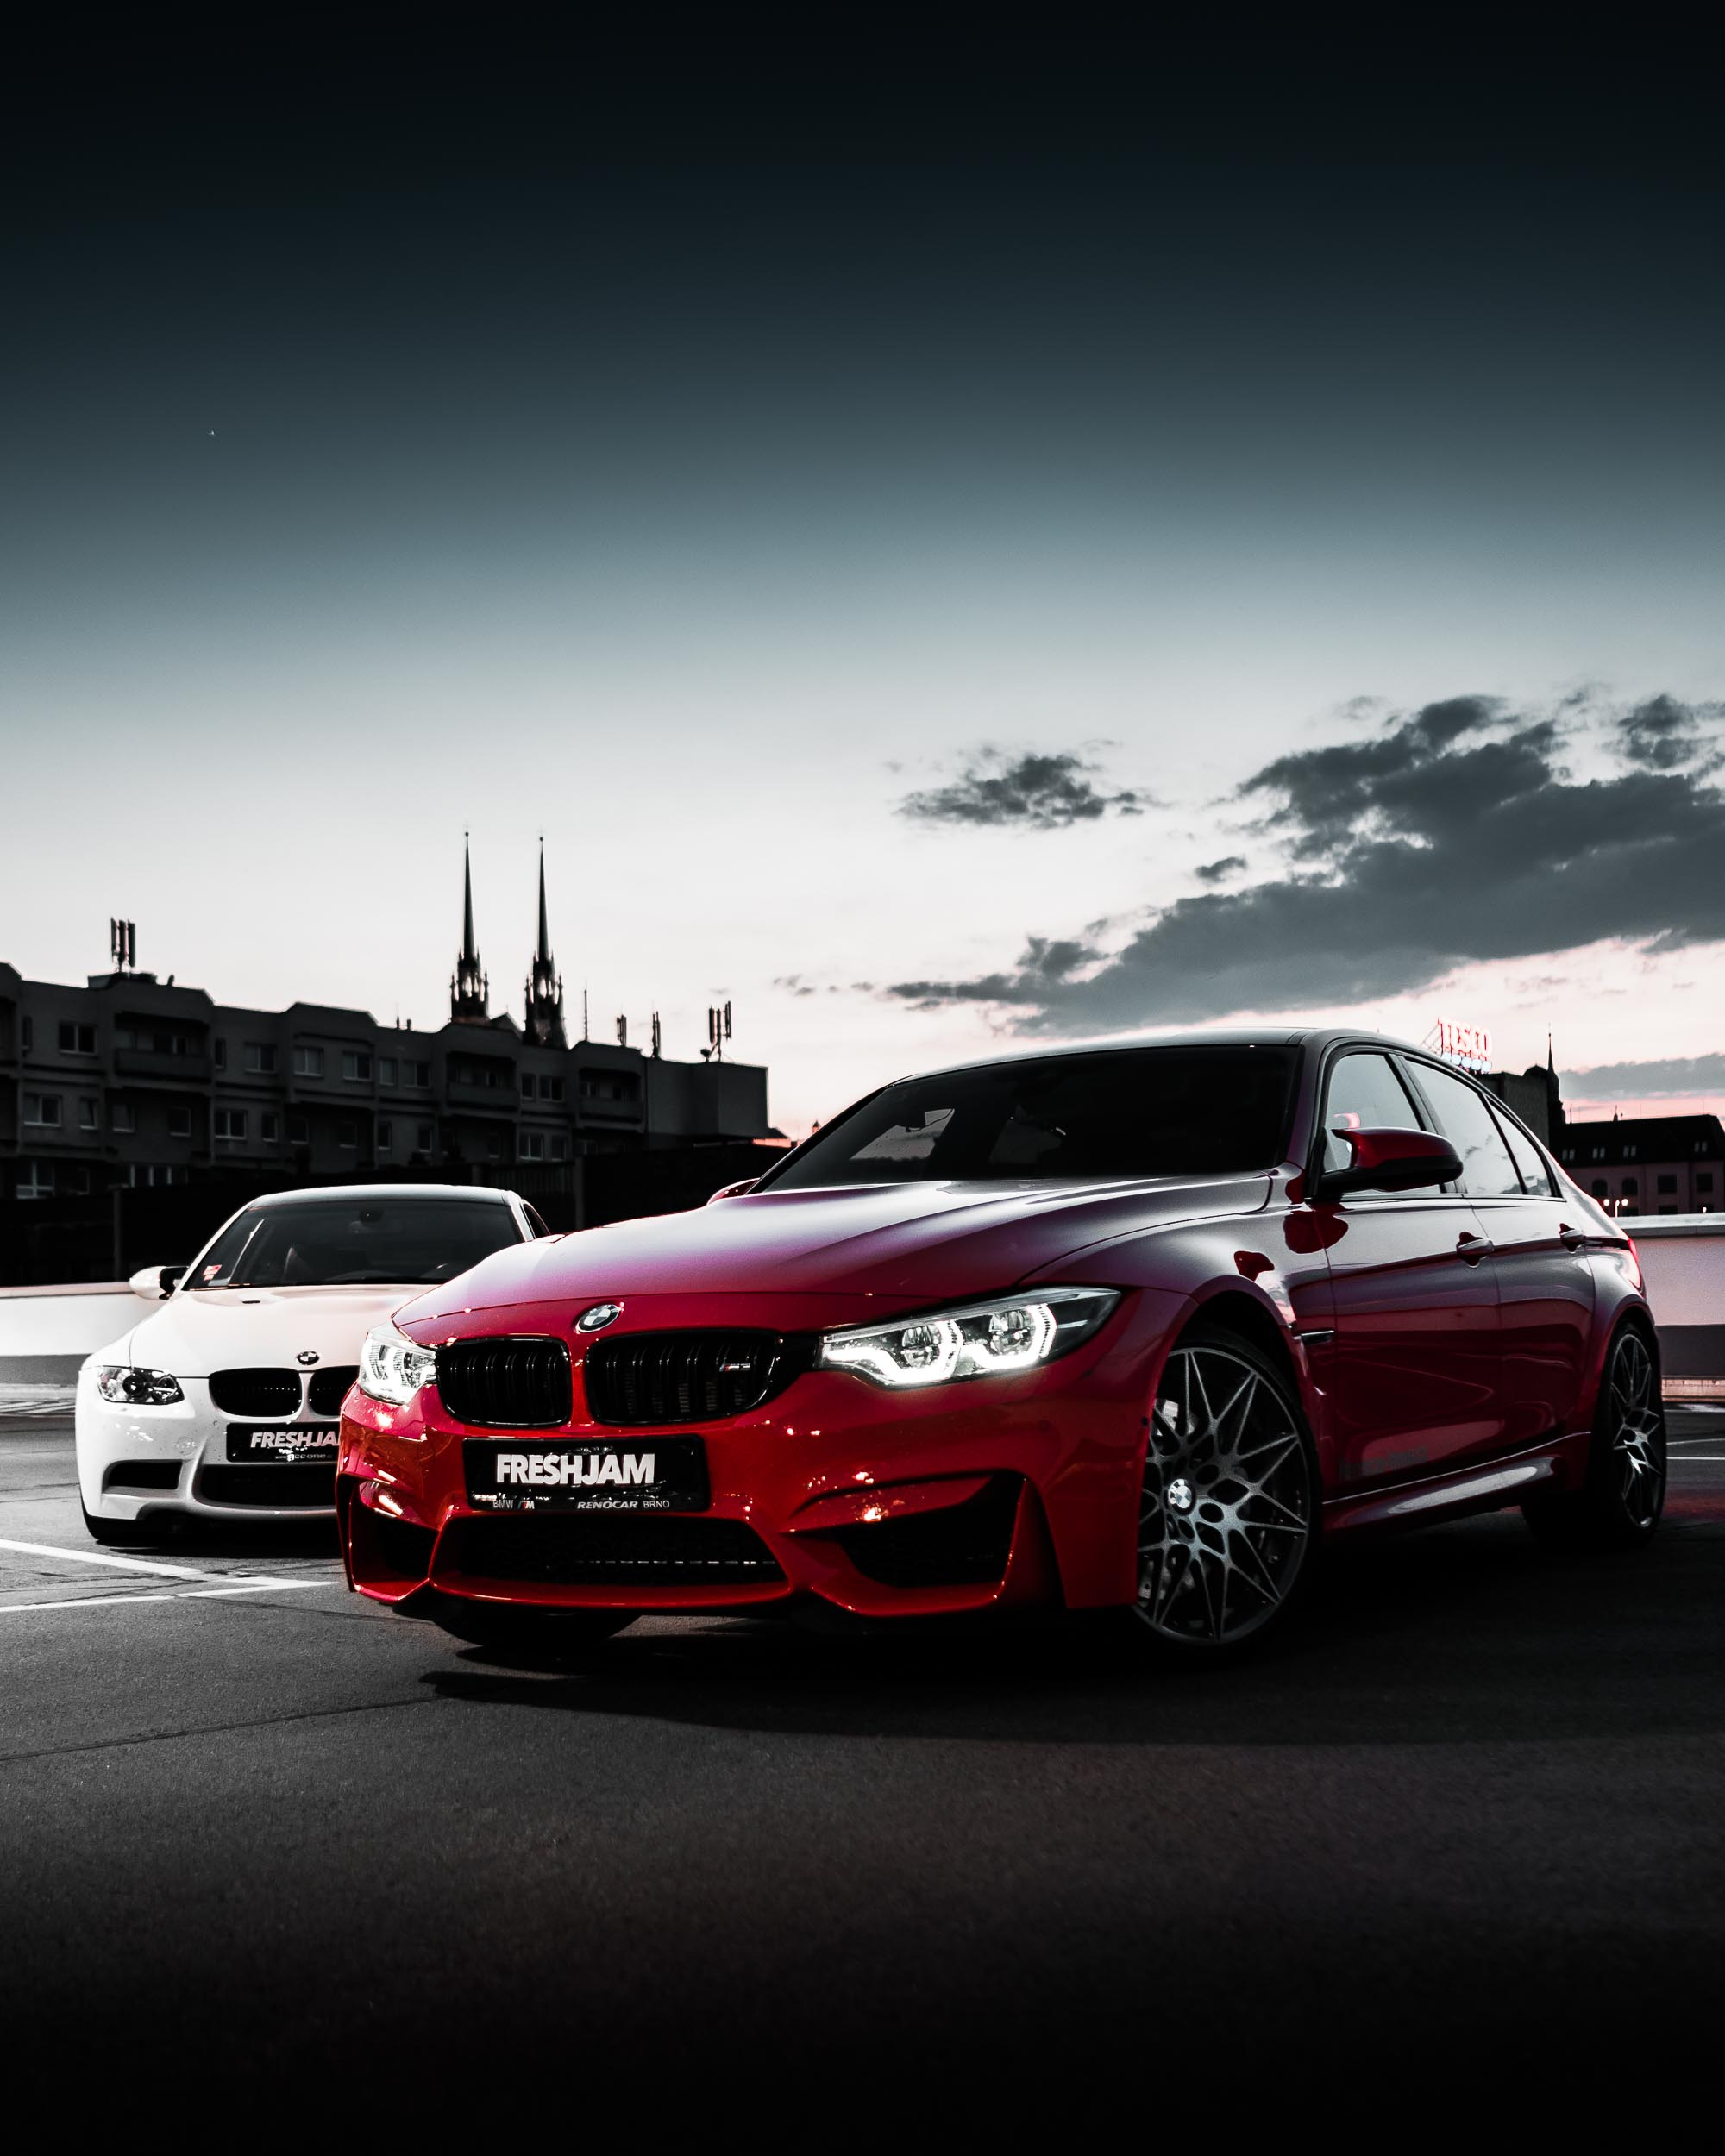 M3 Red M3 White Evening Dark